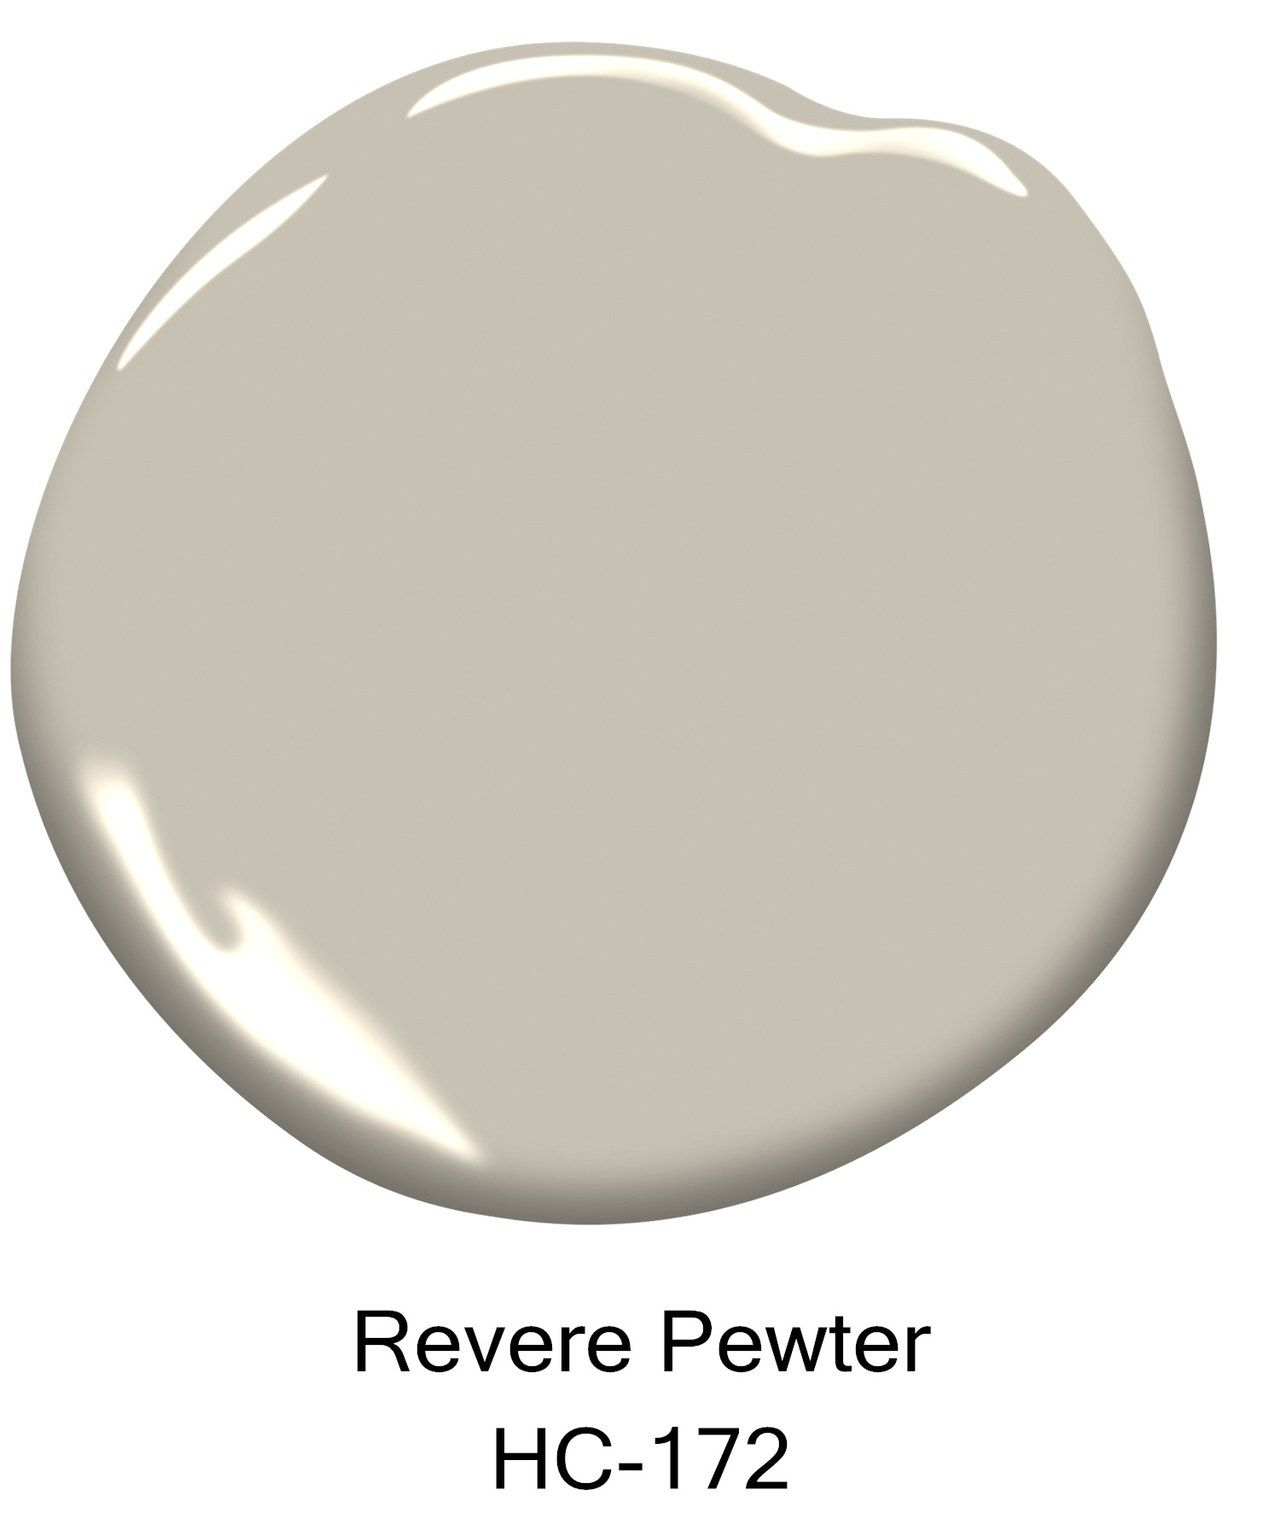 The Top 10 Best-selling Benjamin Moore Paint Colors images